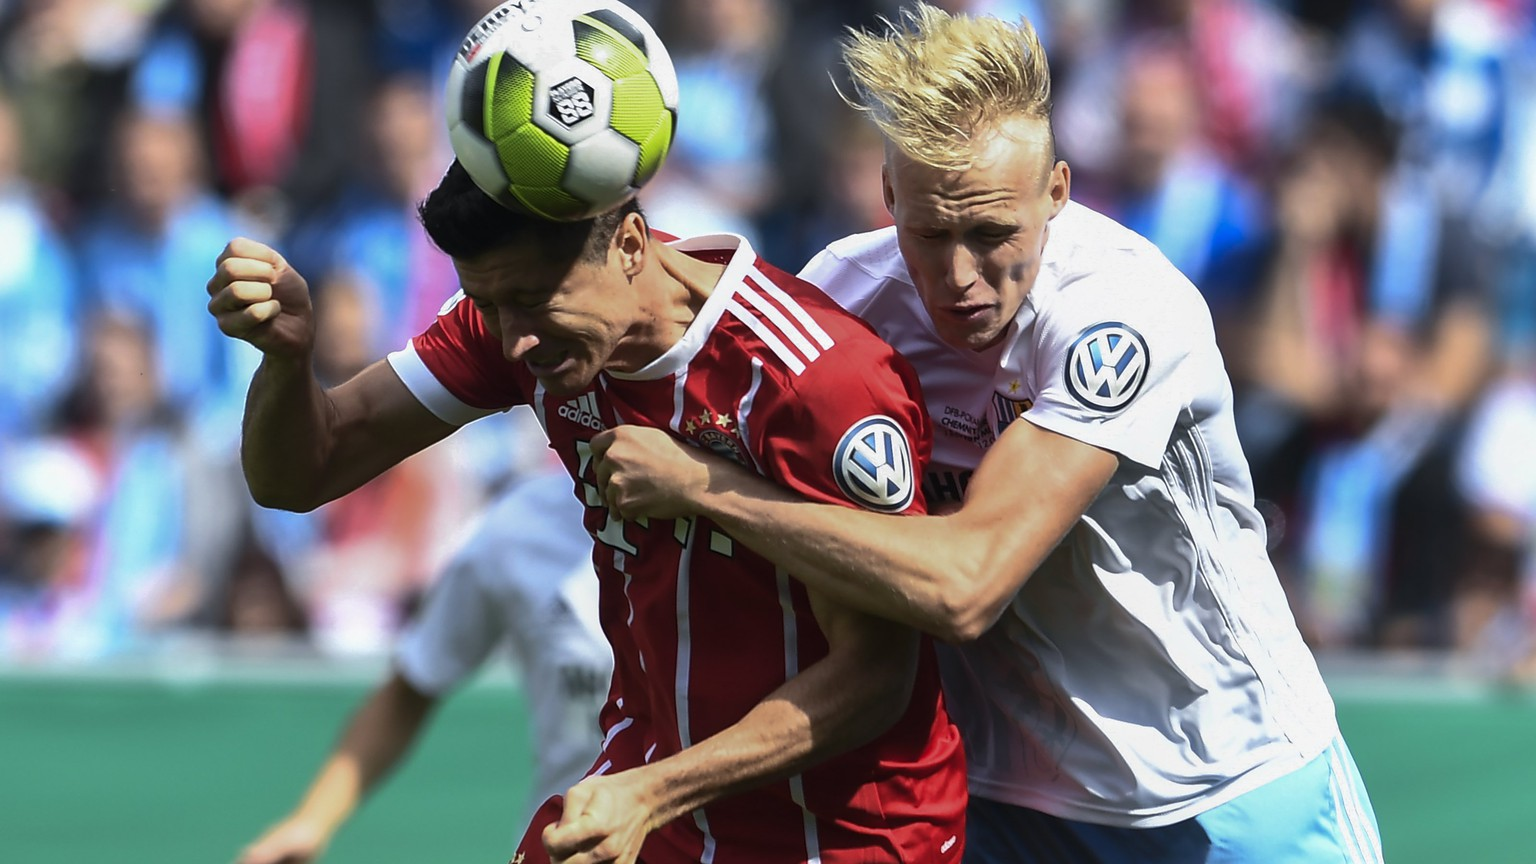 epa06140102 Chemnitz's Tom Scheffel (R) in action against Bayern's Robert Lewandowski (L) during the German DFB Cup first round match between Chemnitzer FC and FC Bayern Munich in Chemnitz, Germany, 12 August 2017.  EPA/FILIP SINGER ATTENTION: BLOCKING PERIOD! The DFB permits the further utilisation and publication of the pictures for mobile services (especially MMS) and for DVB-H and DMB only after the end of the match.)